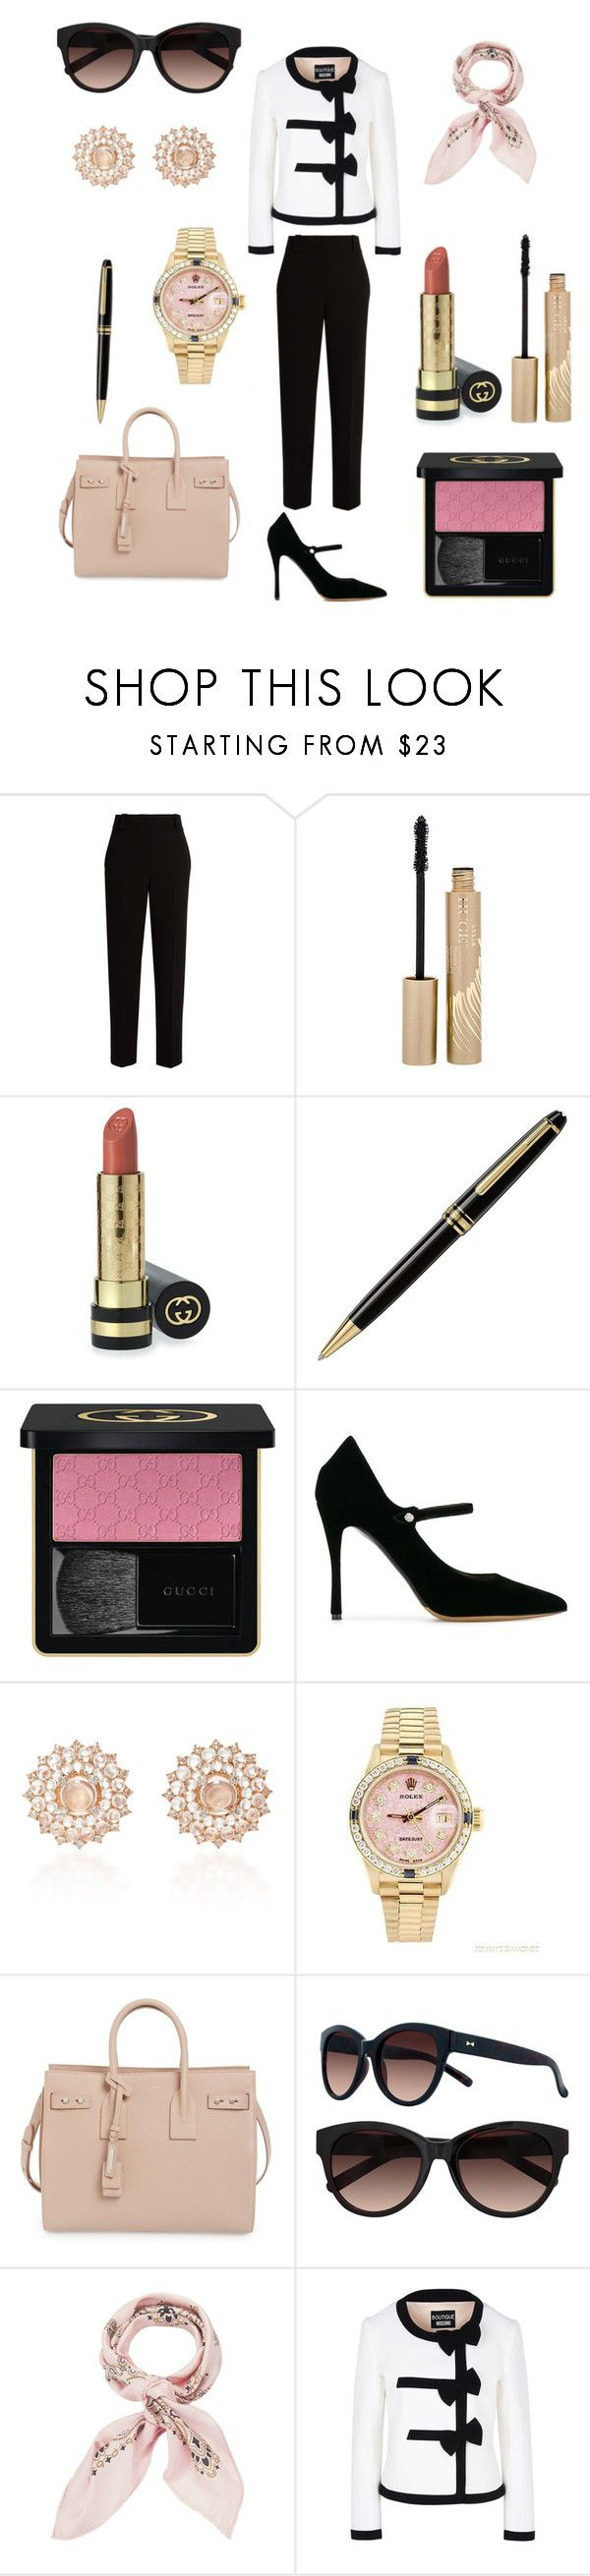 """""""If I was a Rich Girl..."""" by giachrysa ❤ liked on Polyvore featuring The Row, Stila, Gucci, Montblanc, Tabitha Simmons, Nam Cho, Rolex, Yves Saint Laurent, LC Lauren Conrad and Manipuri"""